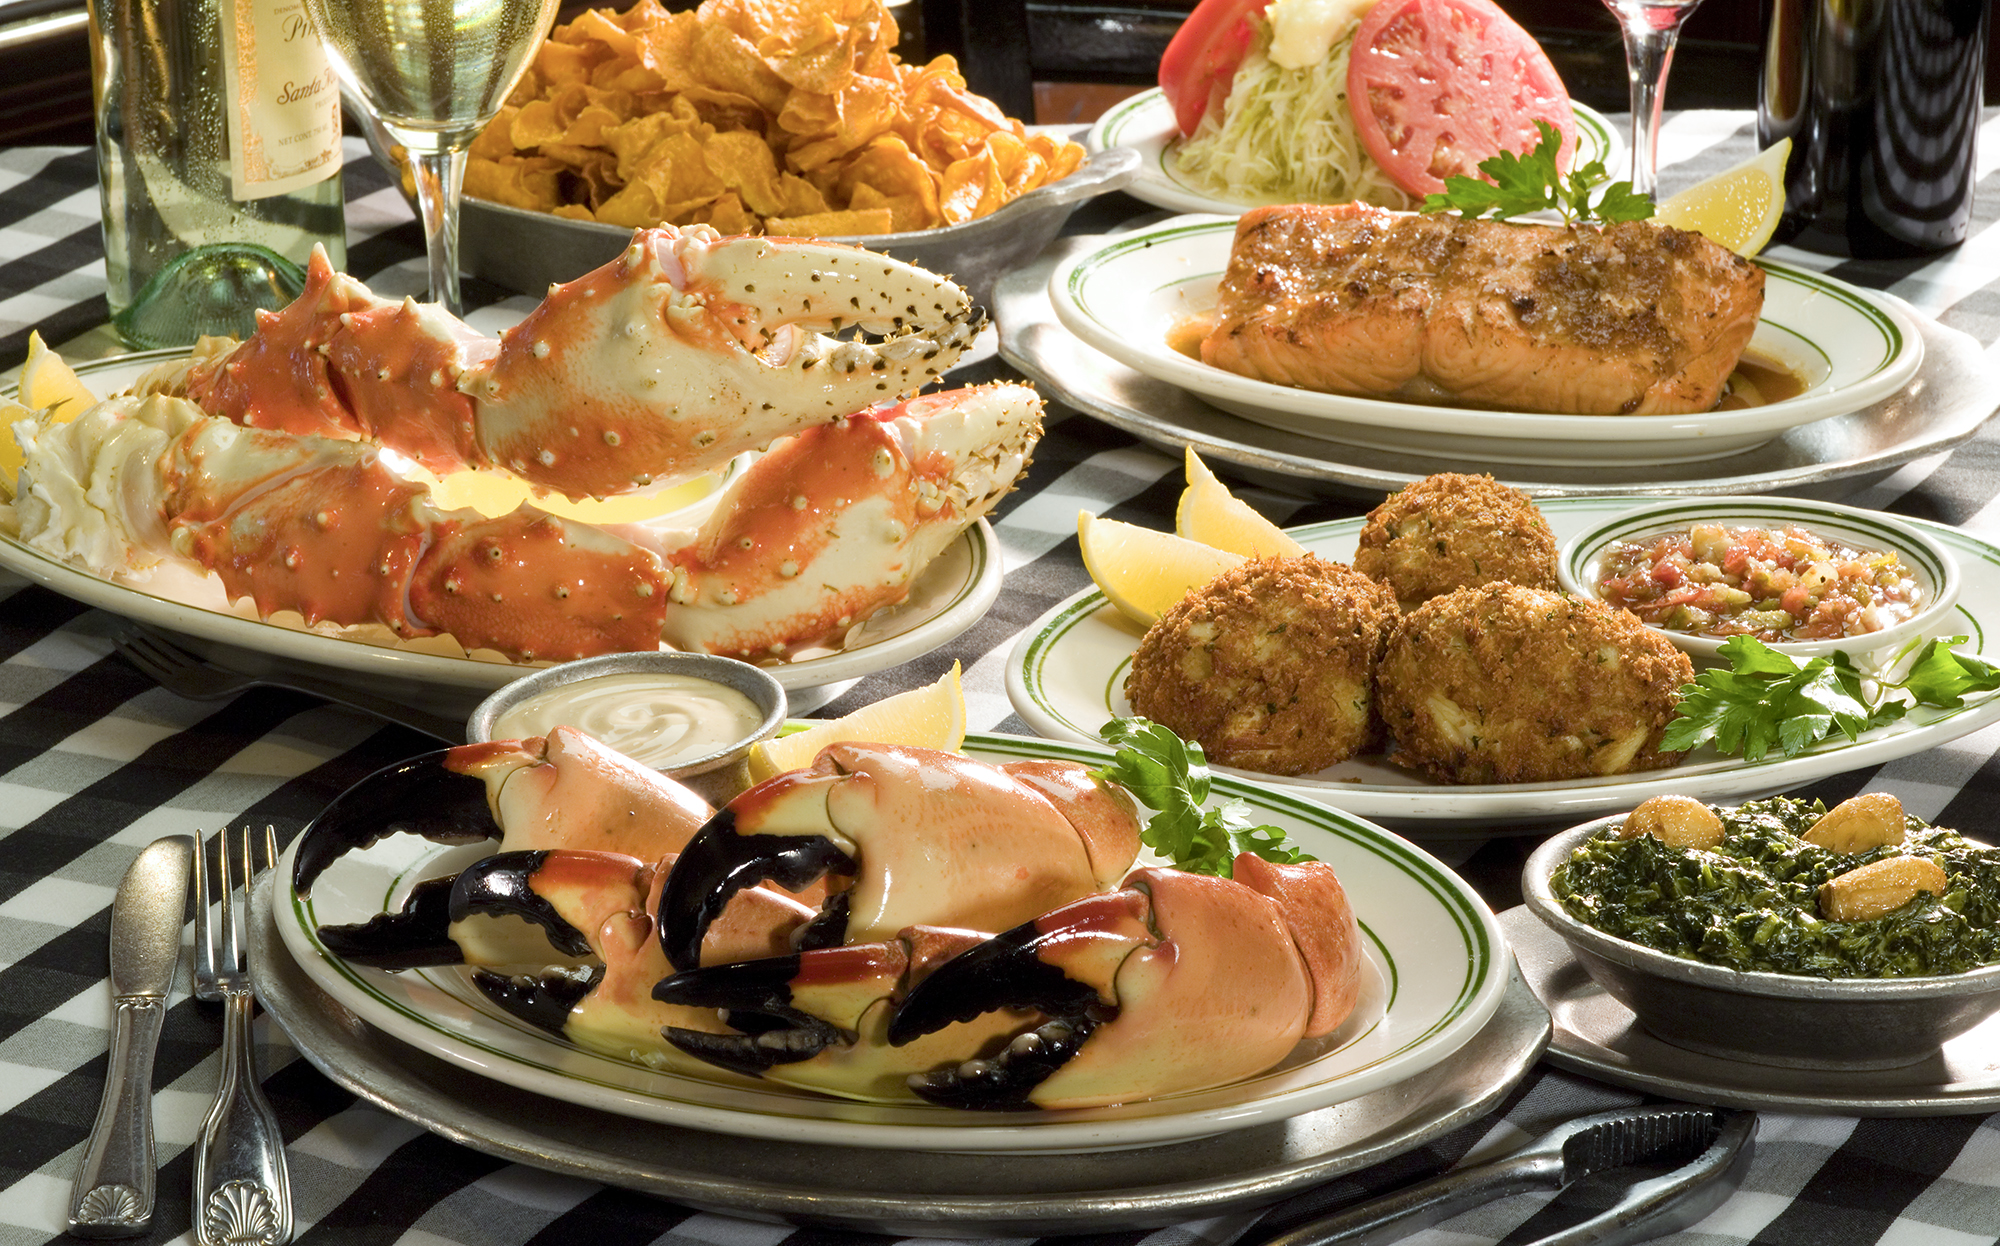 F:PHOTOReady RoomActionsInsert Request48026#joes stone crabJoe'sStoneCrab_GroupFoods_H.jpg